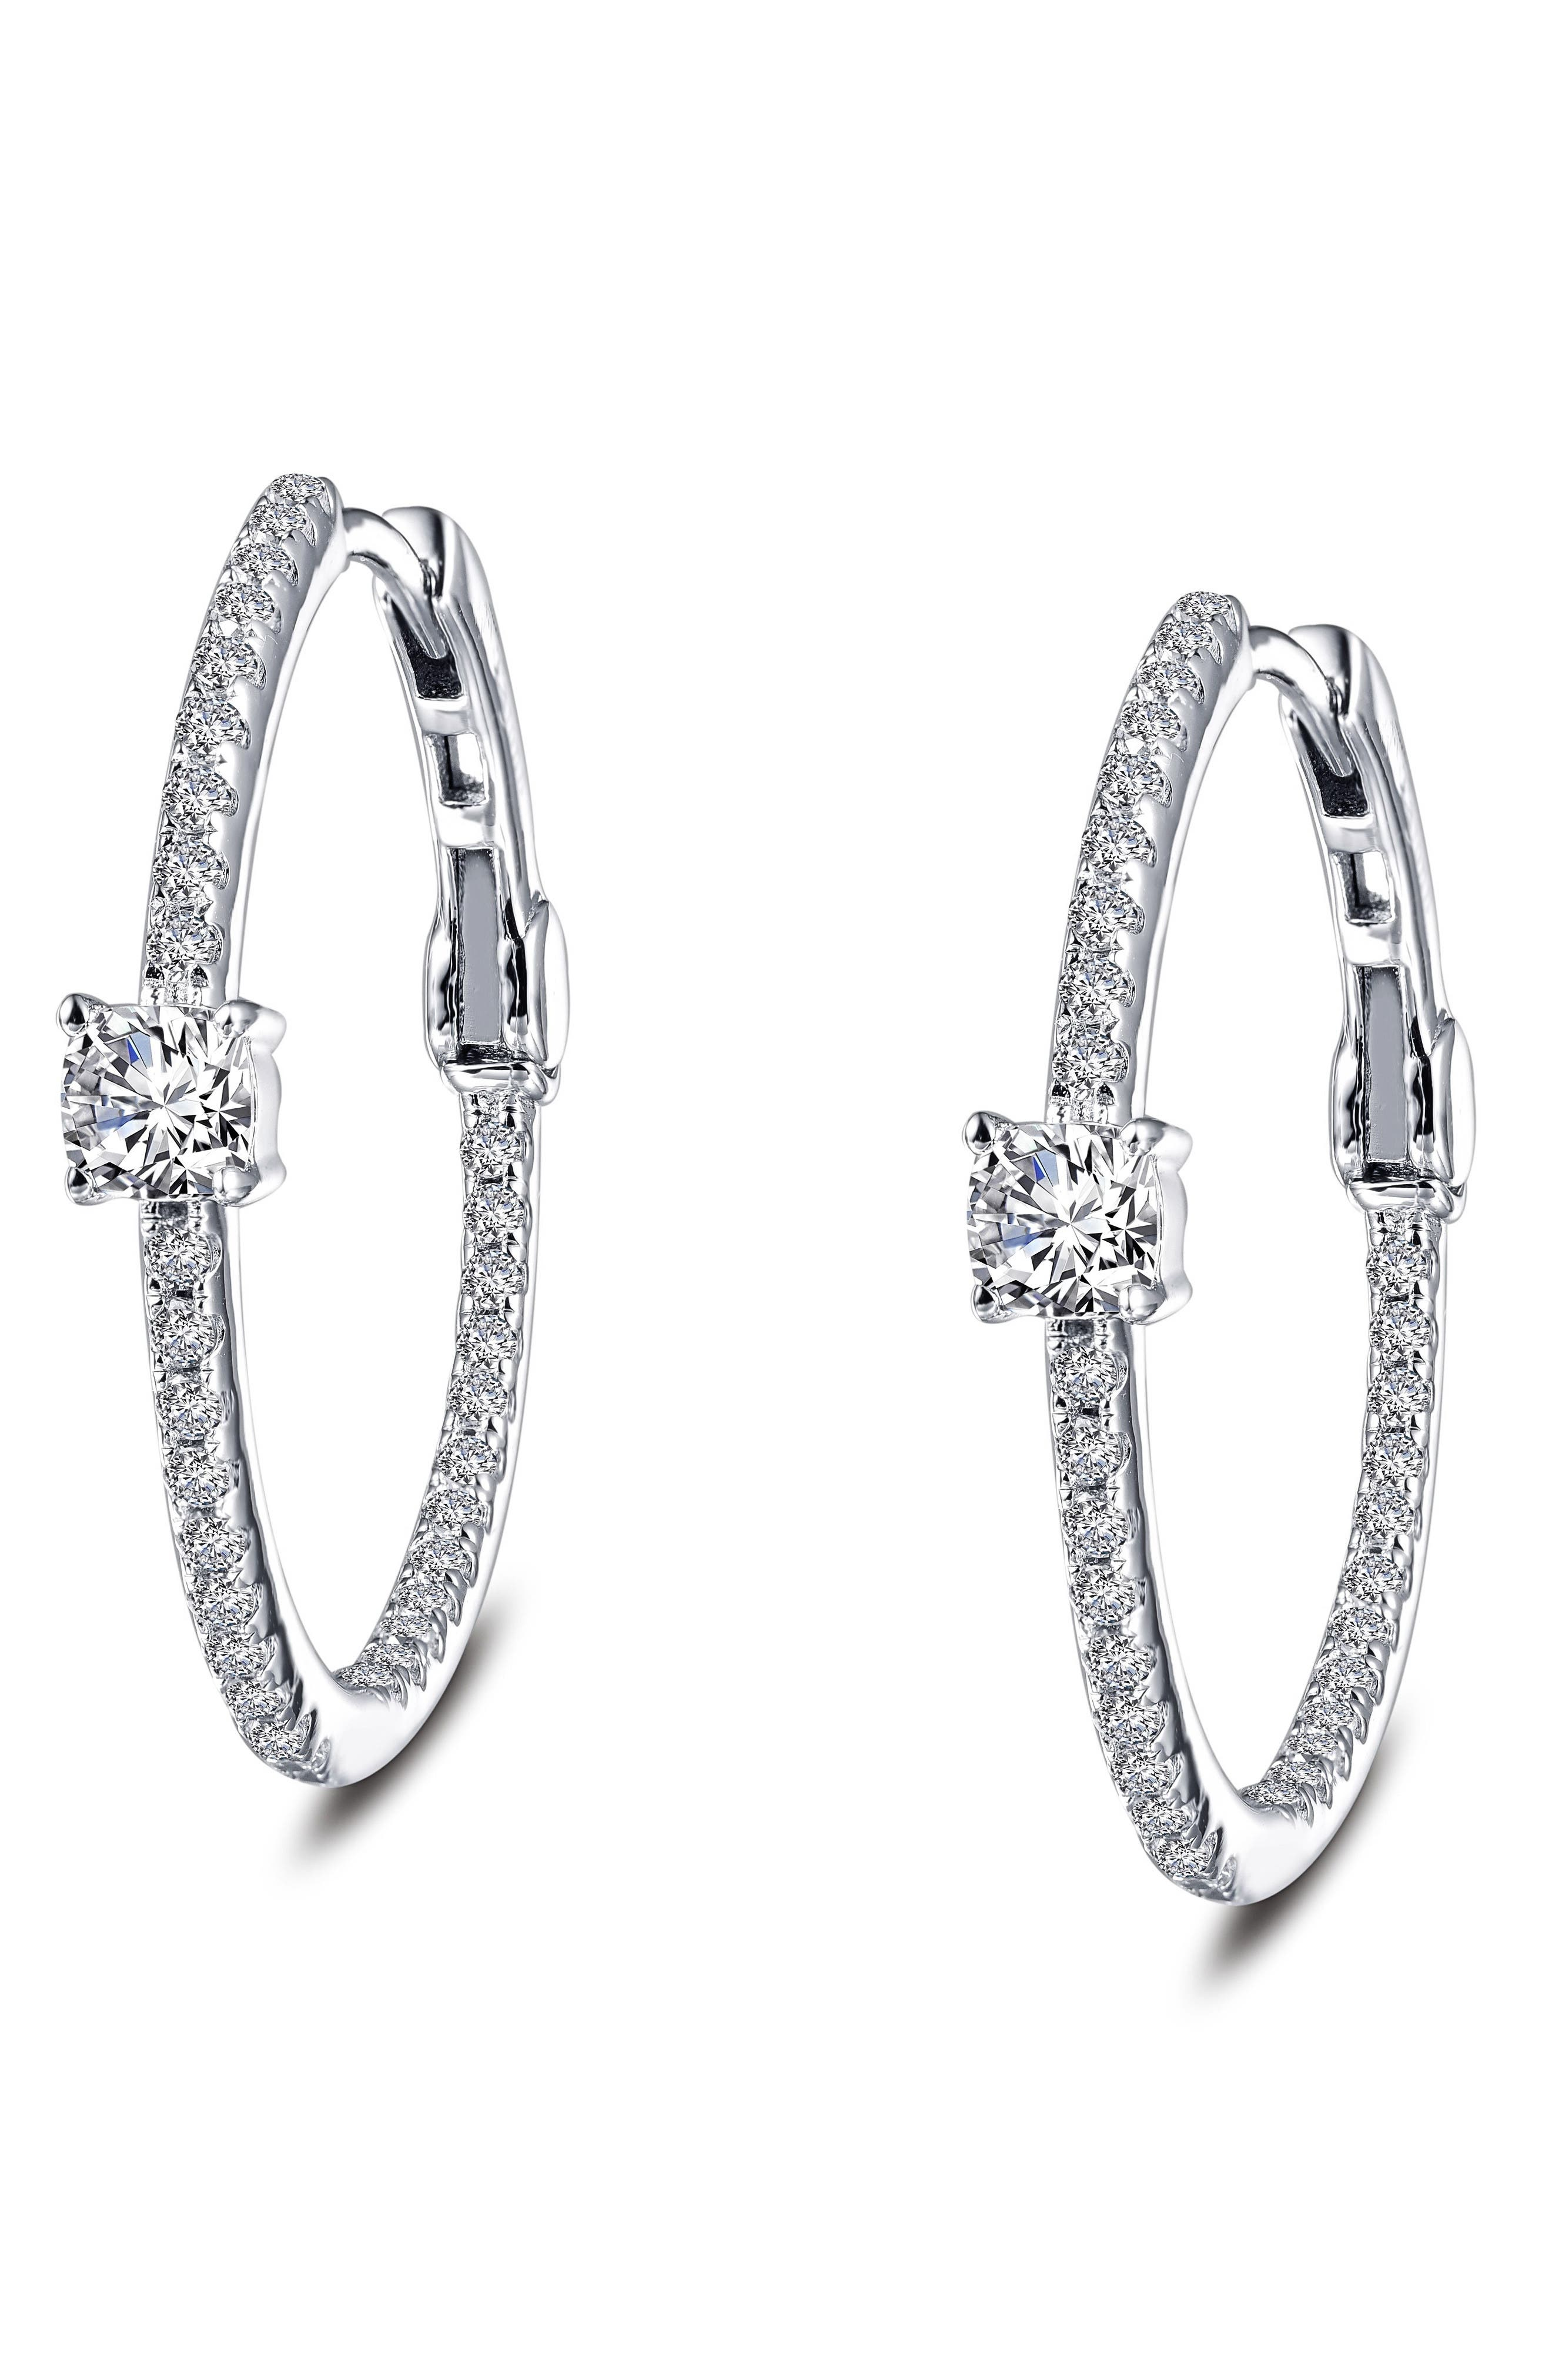 Simulated Diamond Hoop Earrings,                             Alternate thumbnail 3, color,                             Silver/ Clear